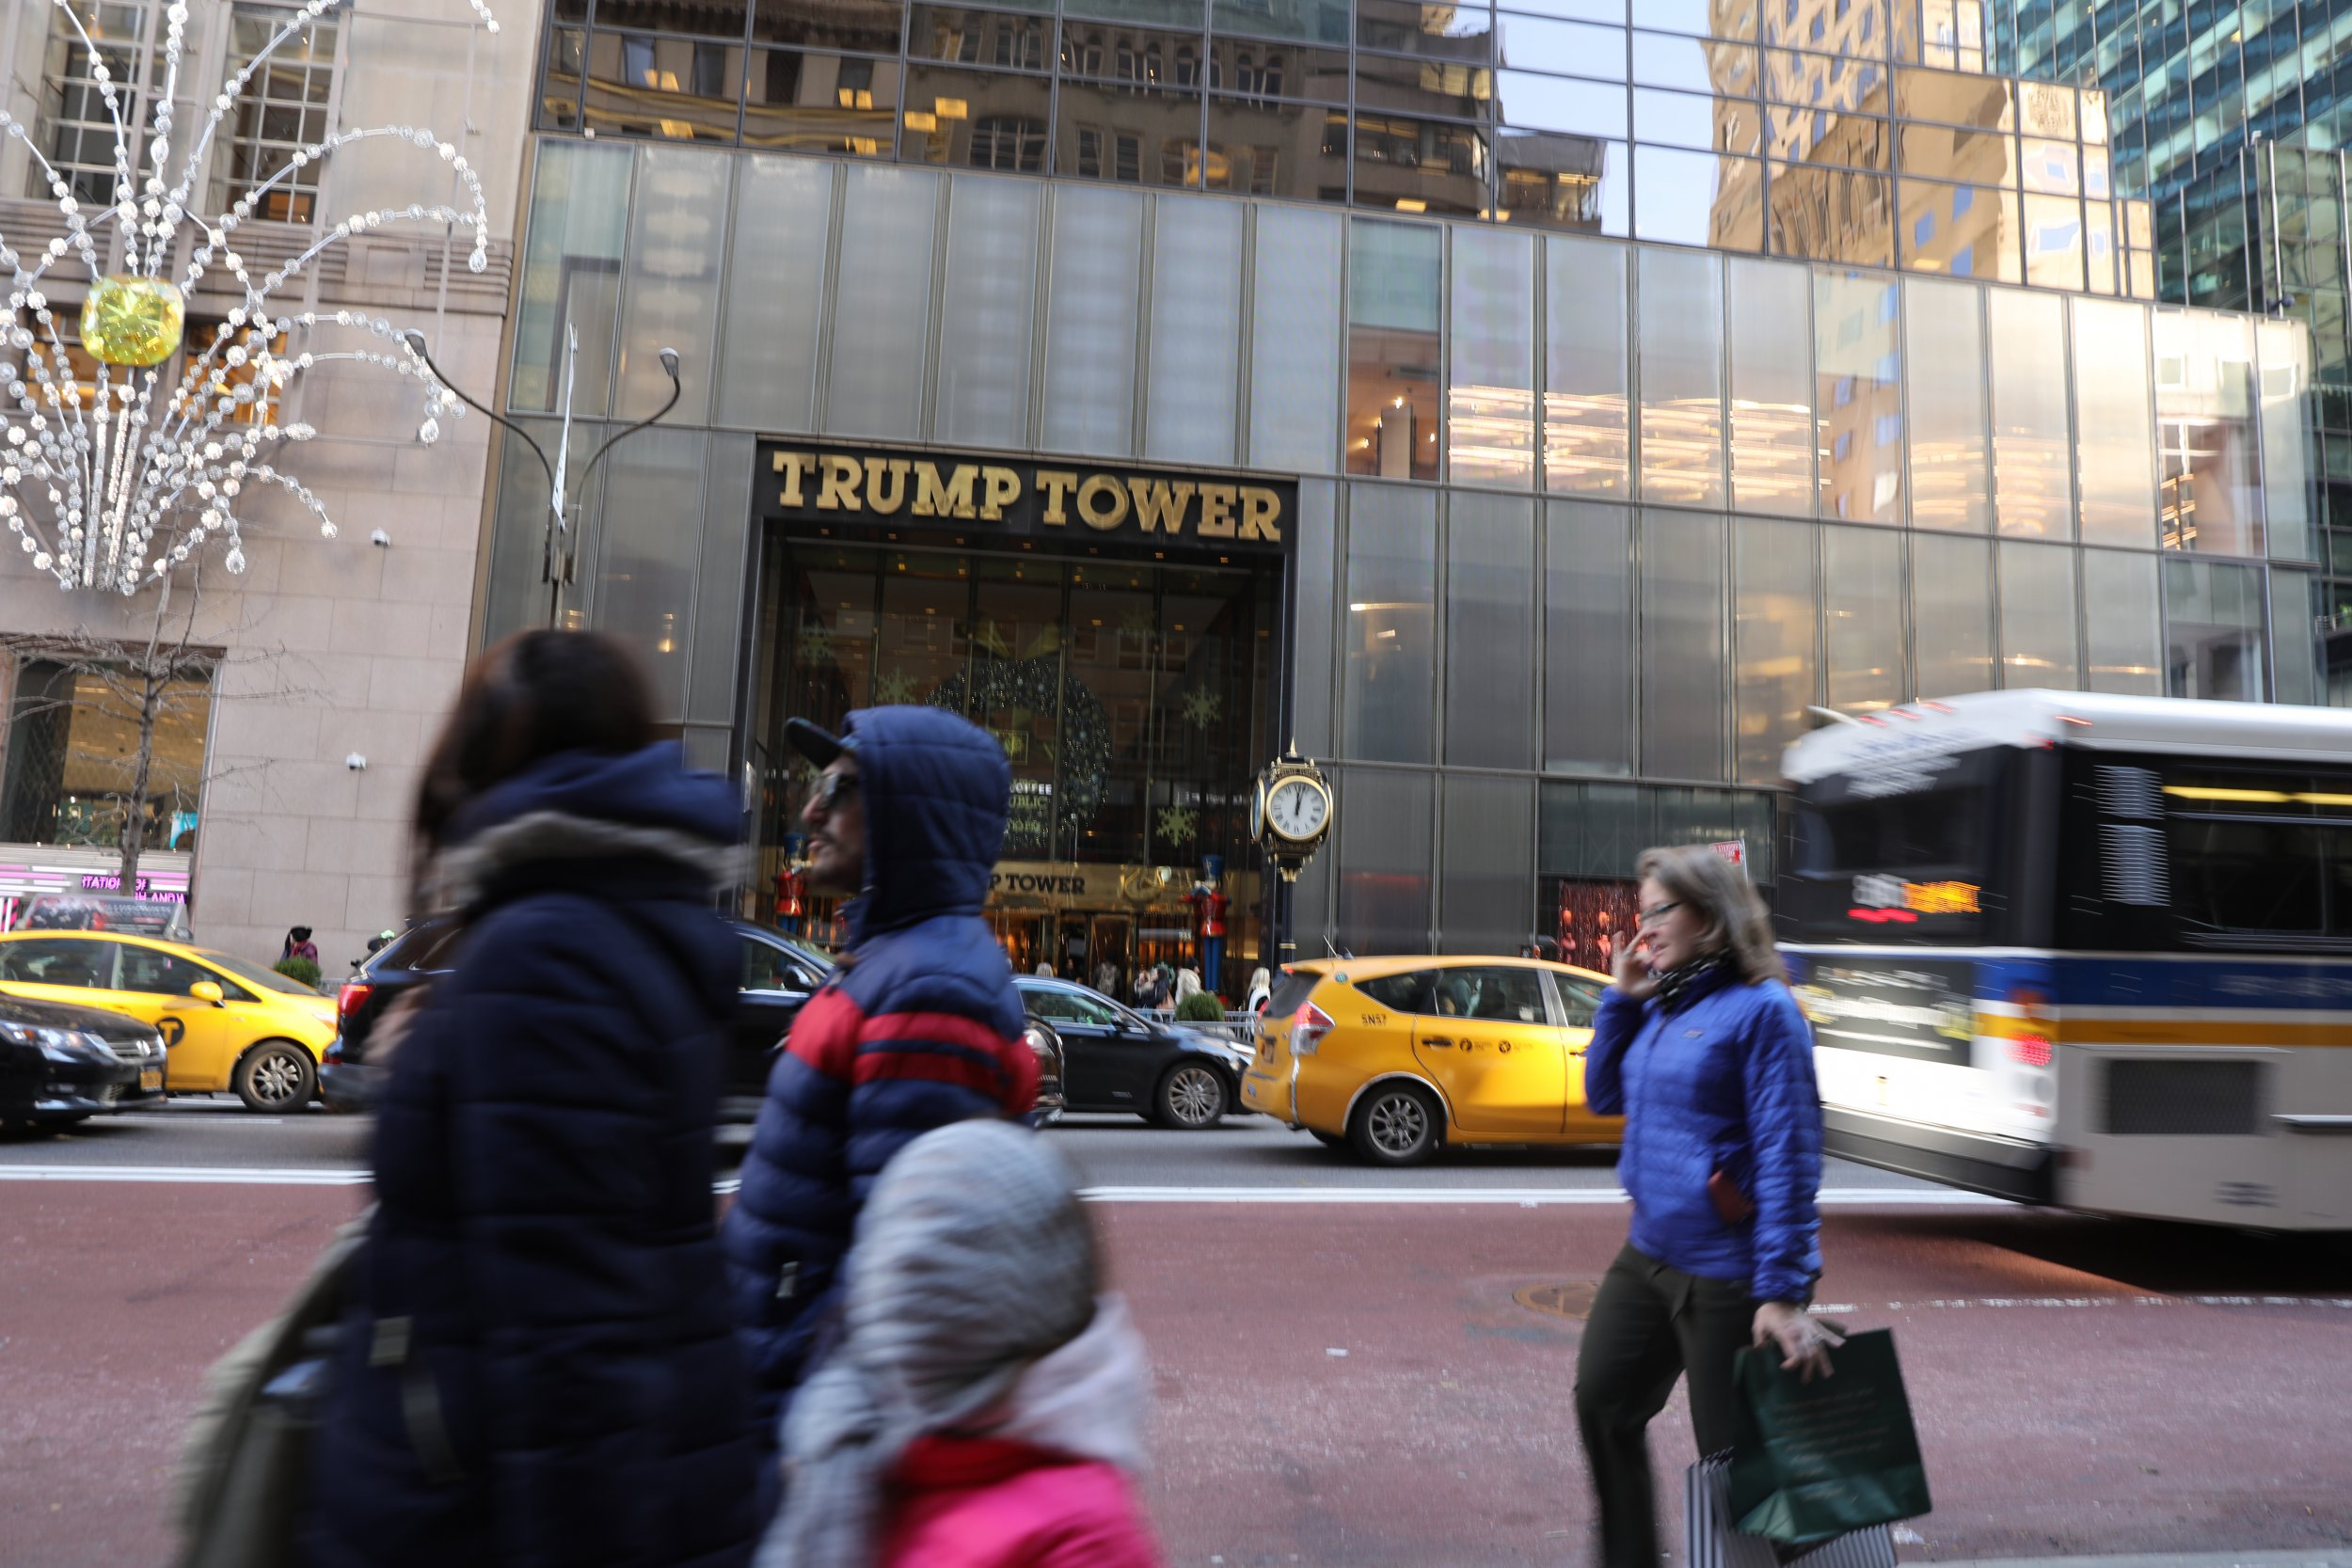 Trump Tower New York City